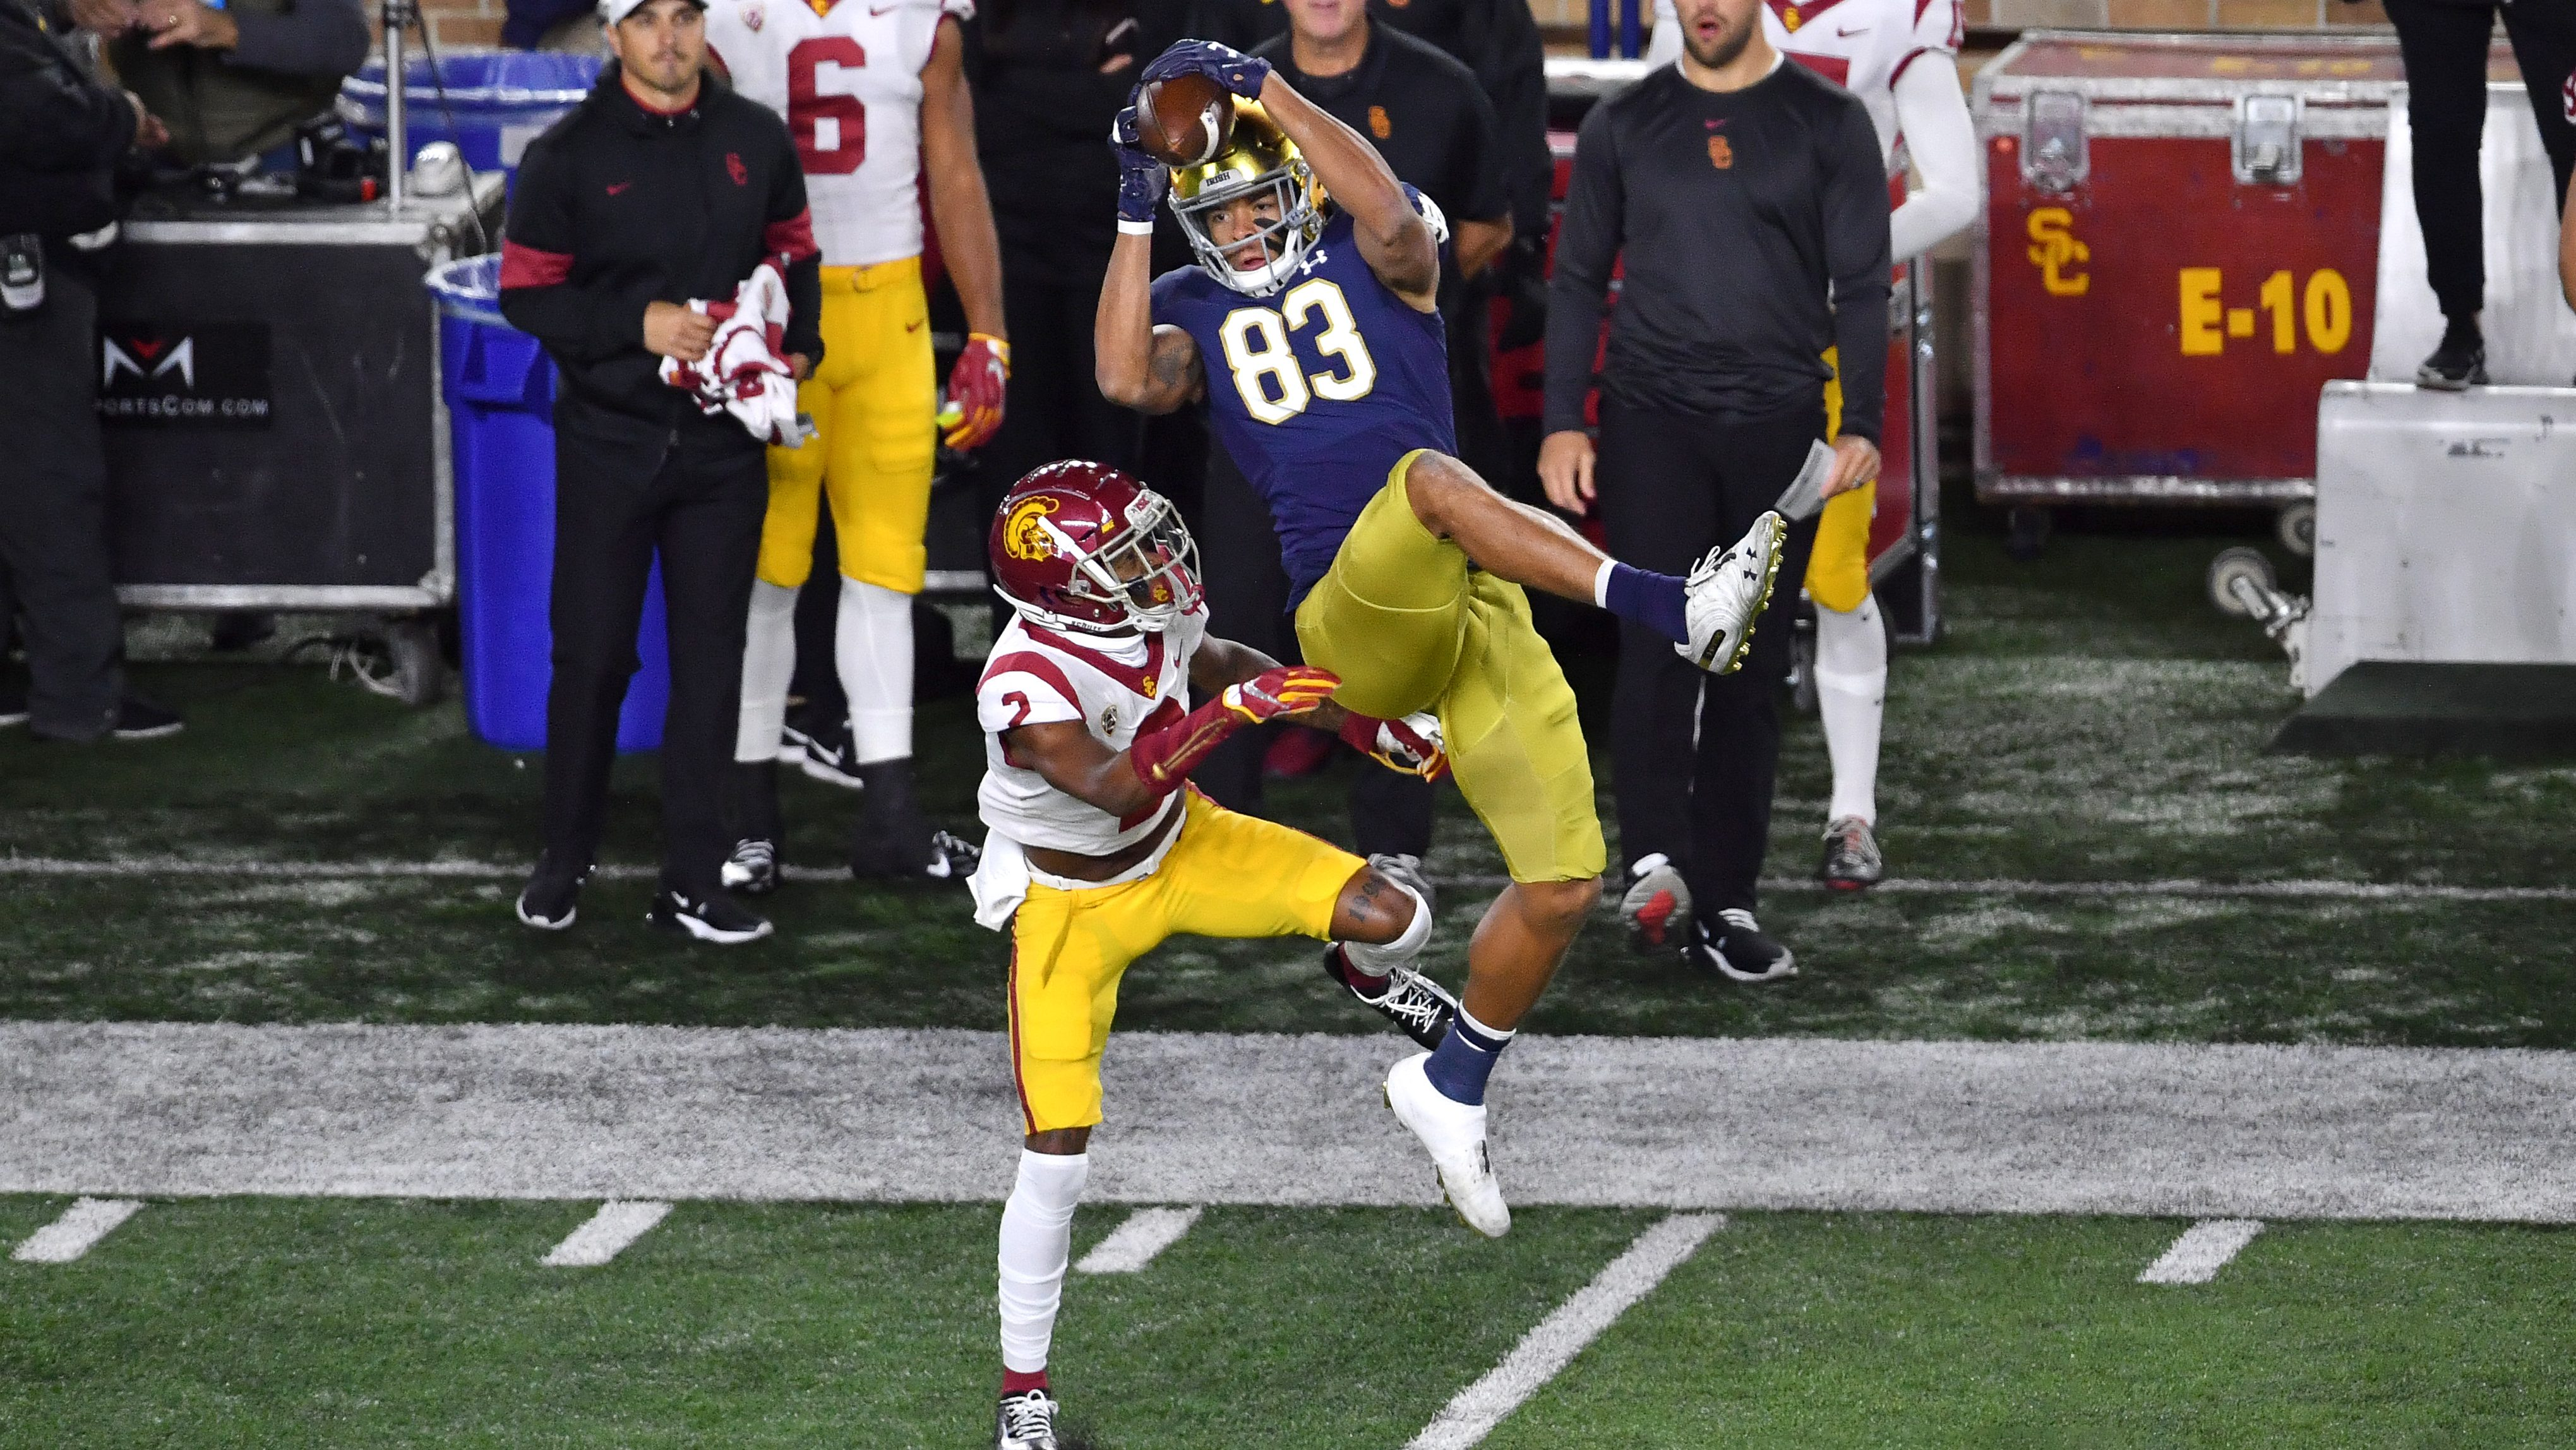 Projecting Notre Dame's Awards Season